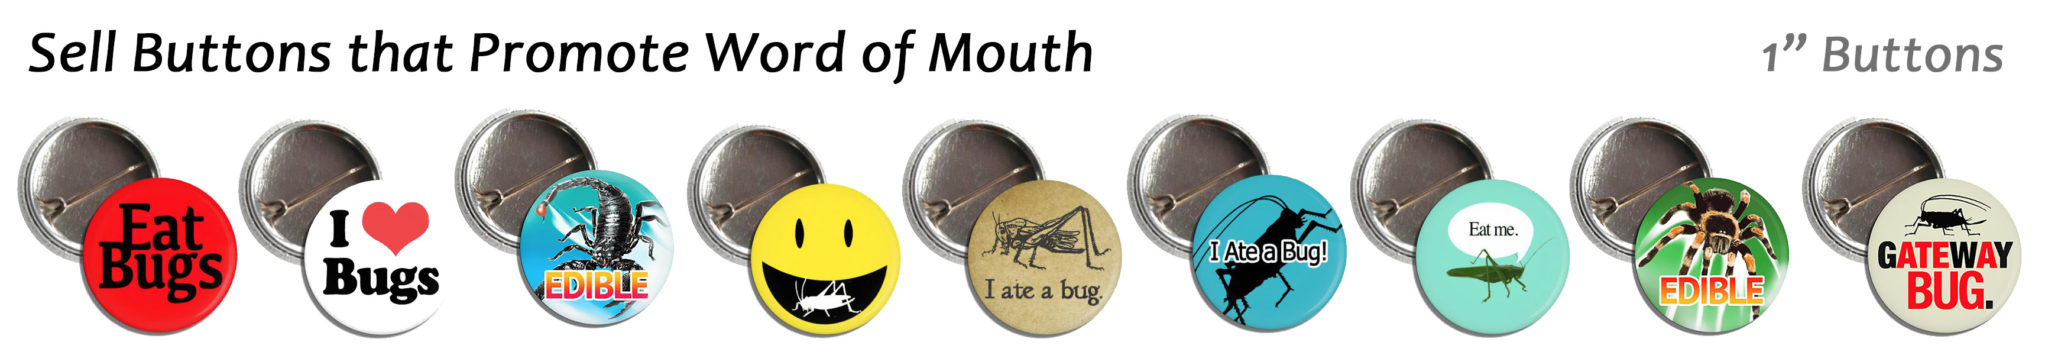 Wholesale Bug Buttons